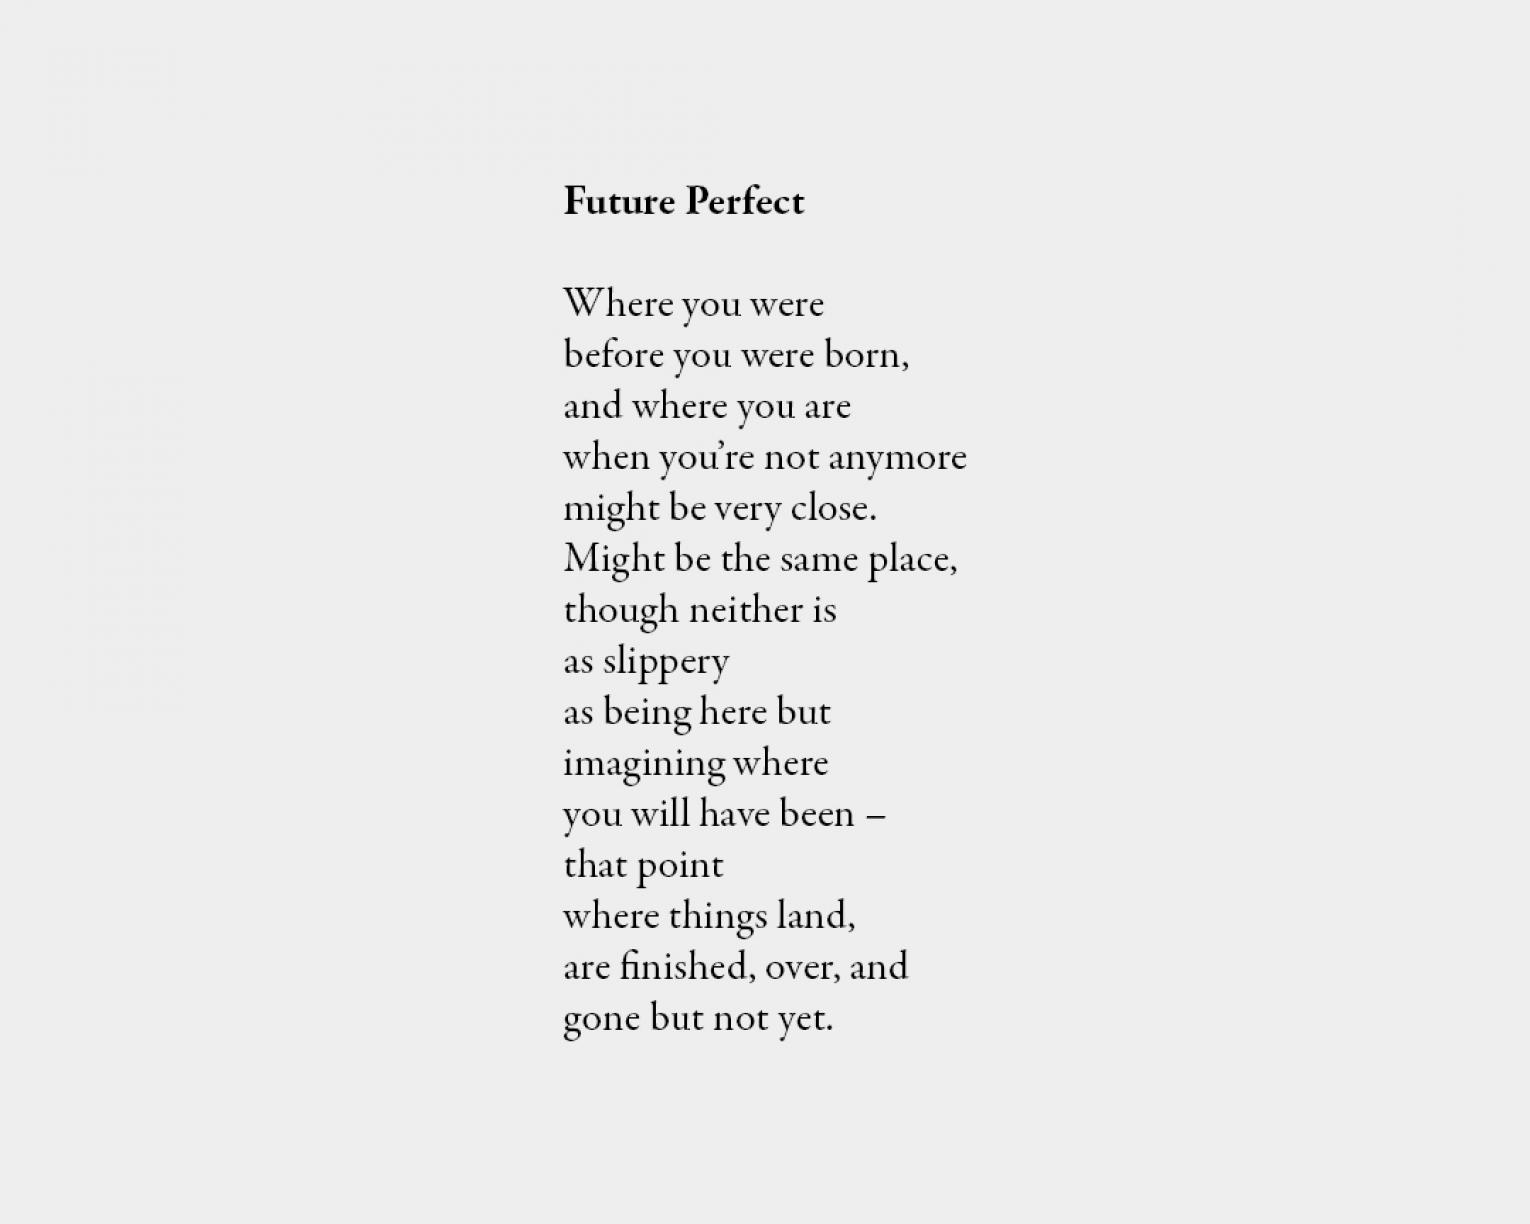 Poem: Future Perfect Where you were before you were born, and where you are when you're not anymore might be very close. Might be the same place, though neither is as slippery as being here but imagining where you will have been – that point where things land, are finished, over, and gone but not yet.